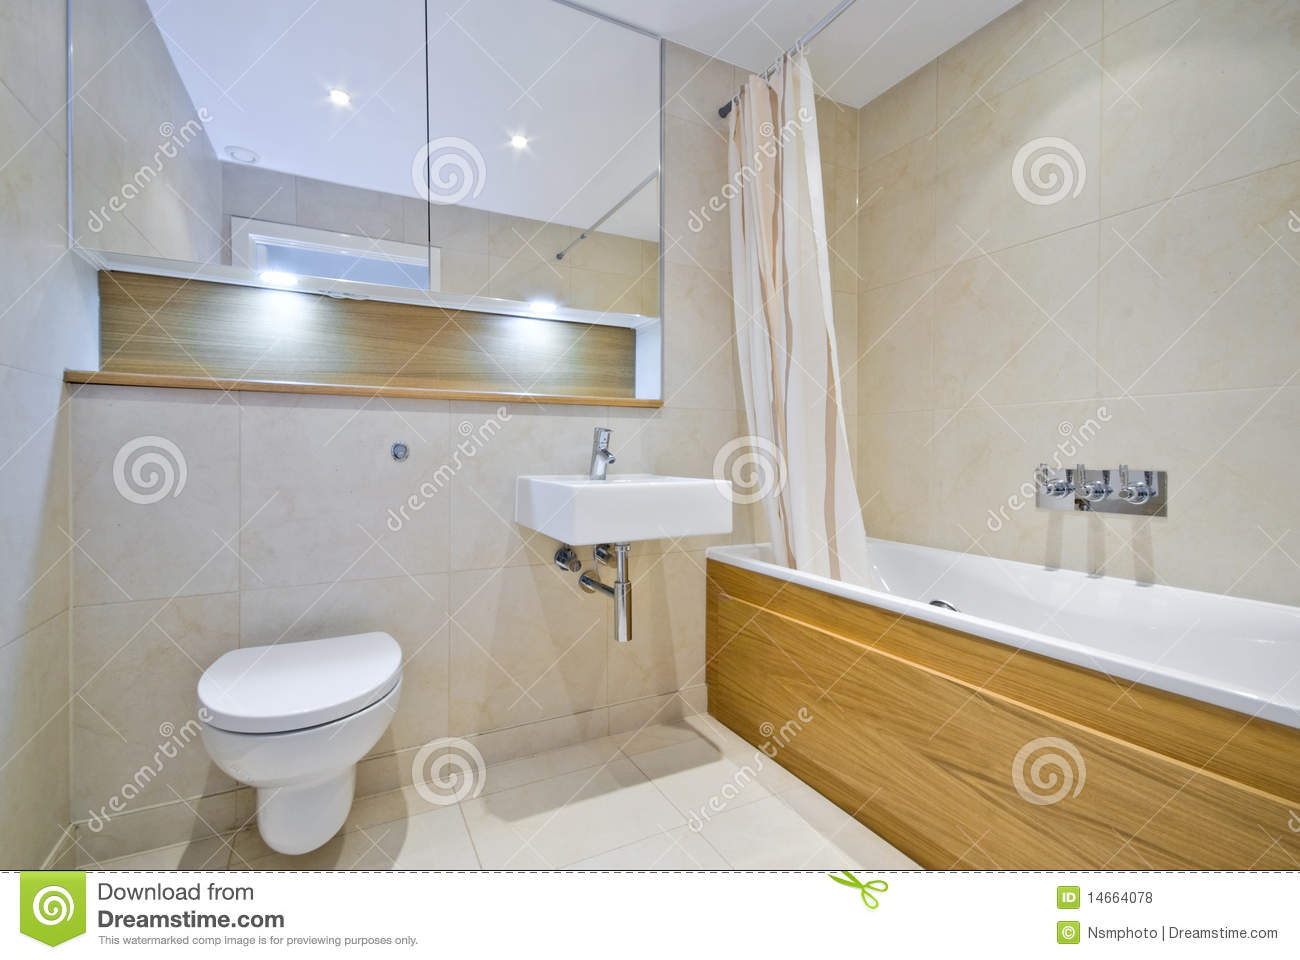 Modern Bathroom With Large Bath Tub In Beige Stock Photo - Image of ...